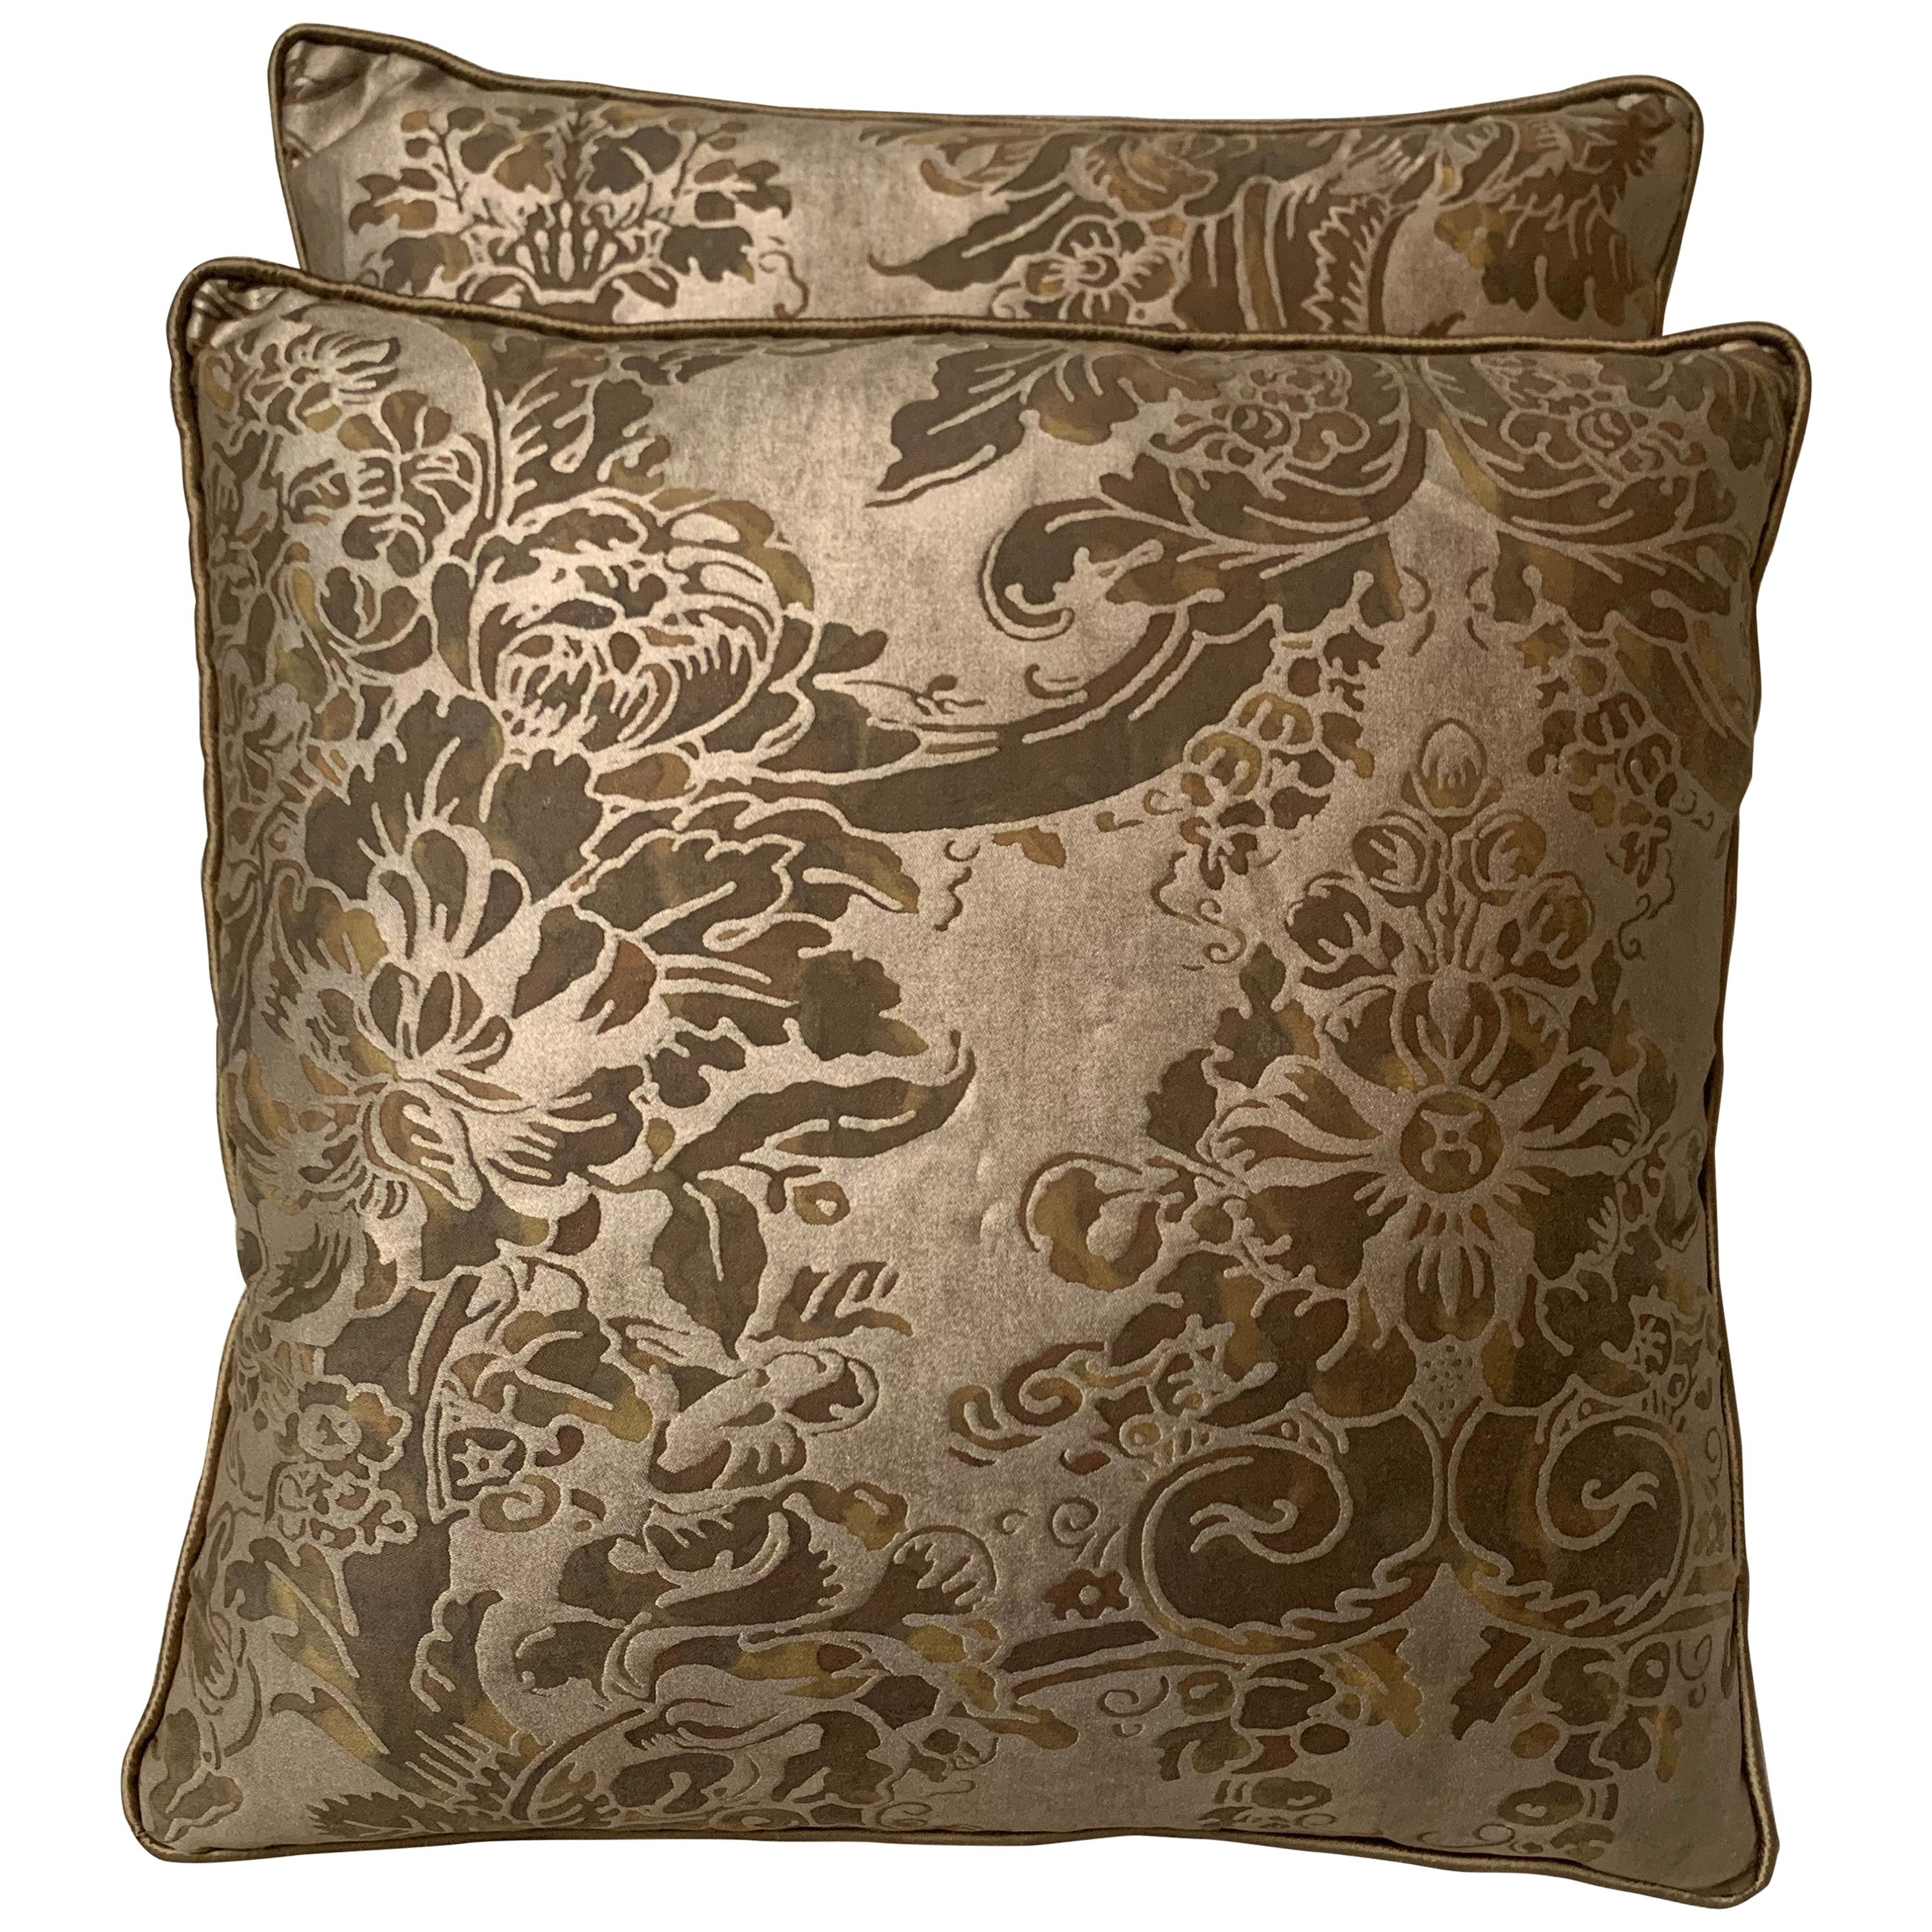 Pair of Custom Fortuny Pillows with Golden Silk Backs